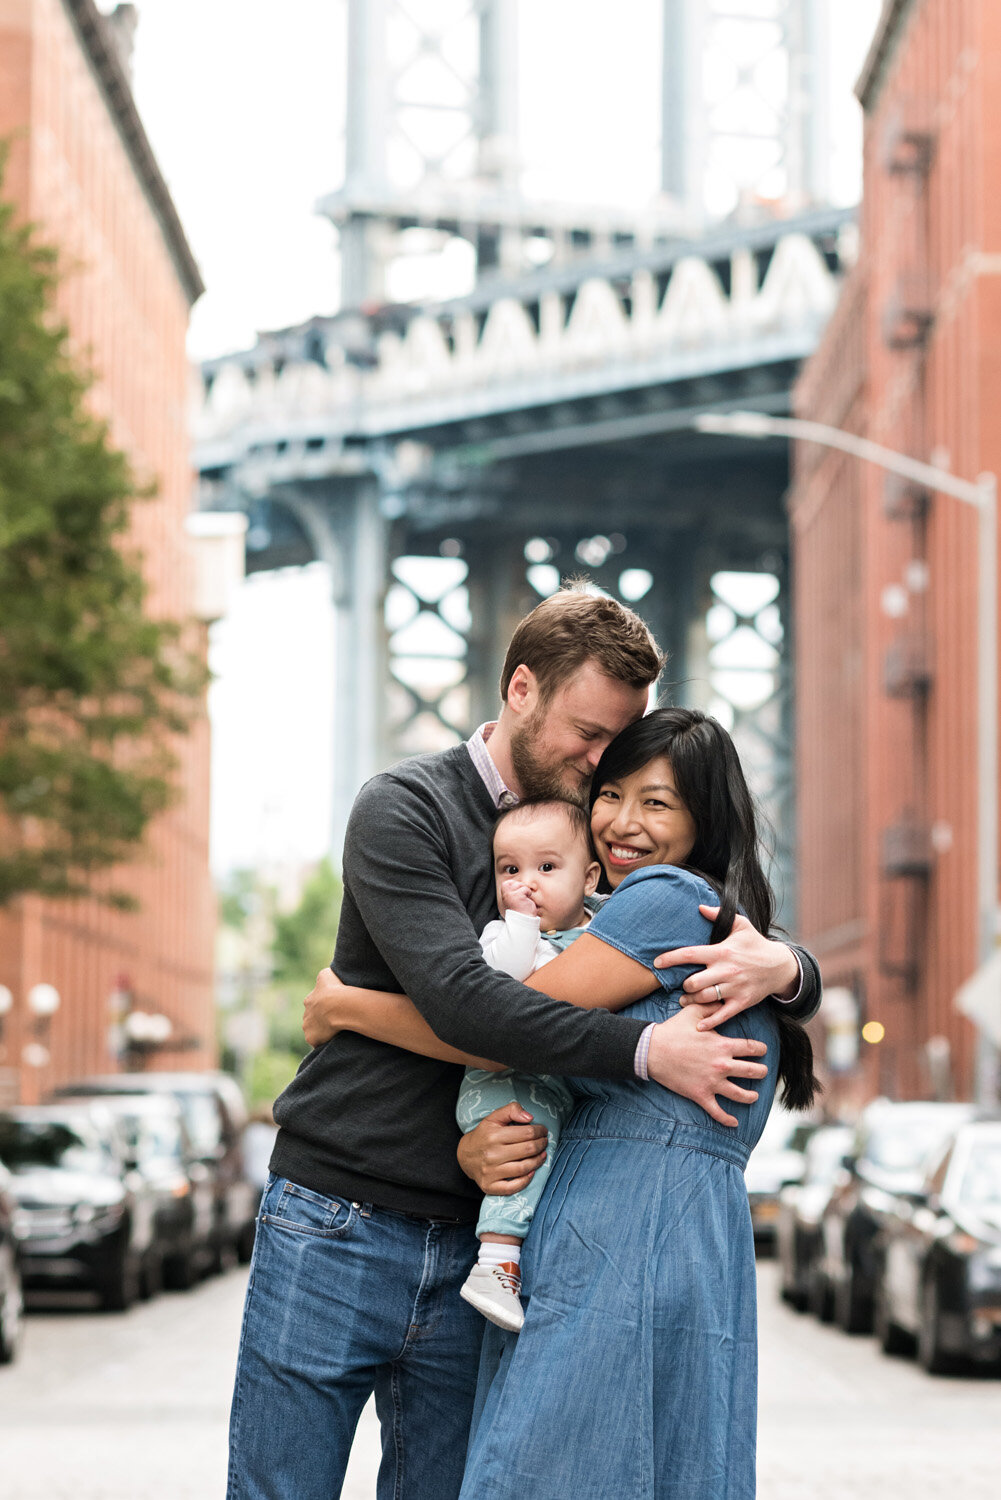 Dumbo Brooklyn Family Photographer_20190908_02.jpg